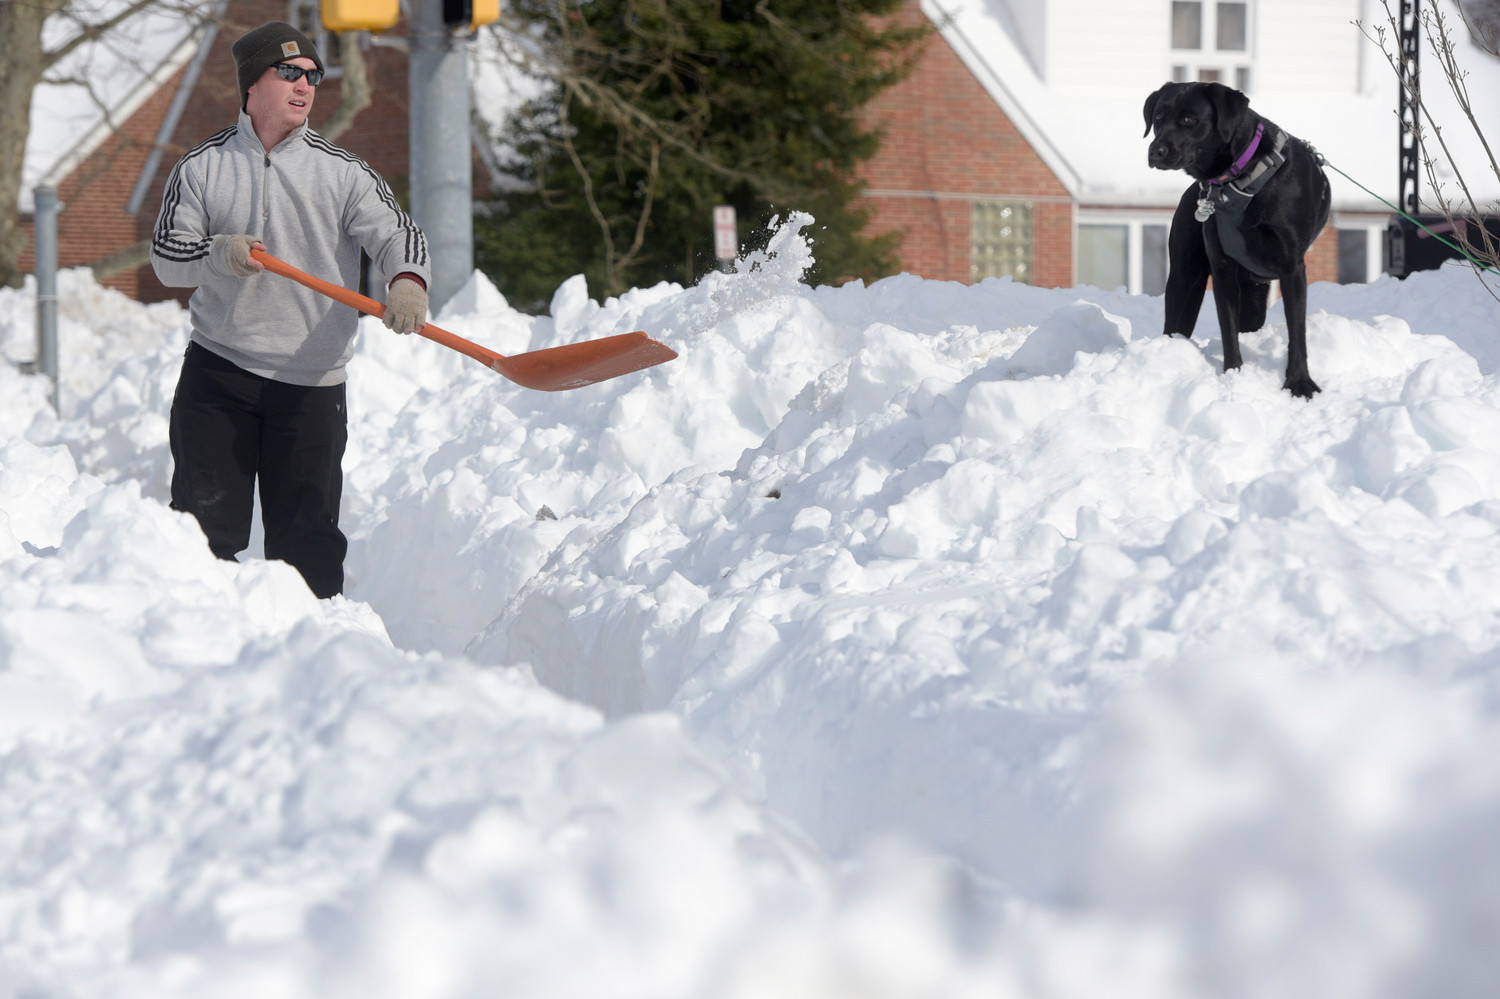 More than a foot of snow for some as nor'easter arrives